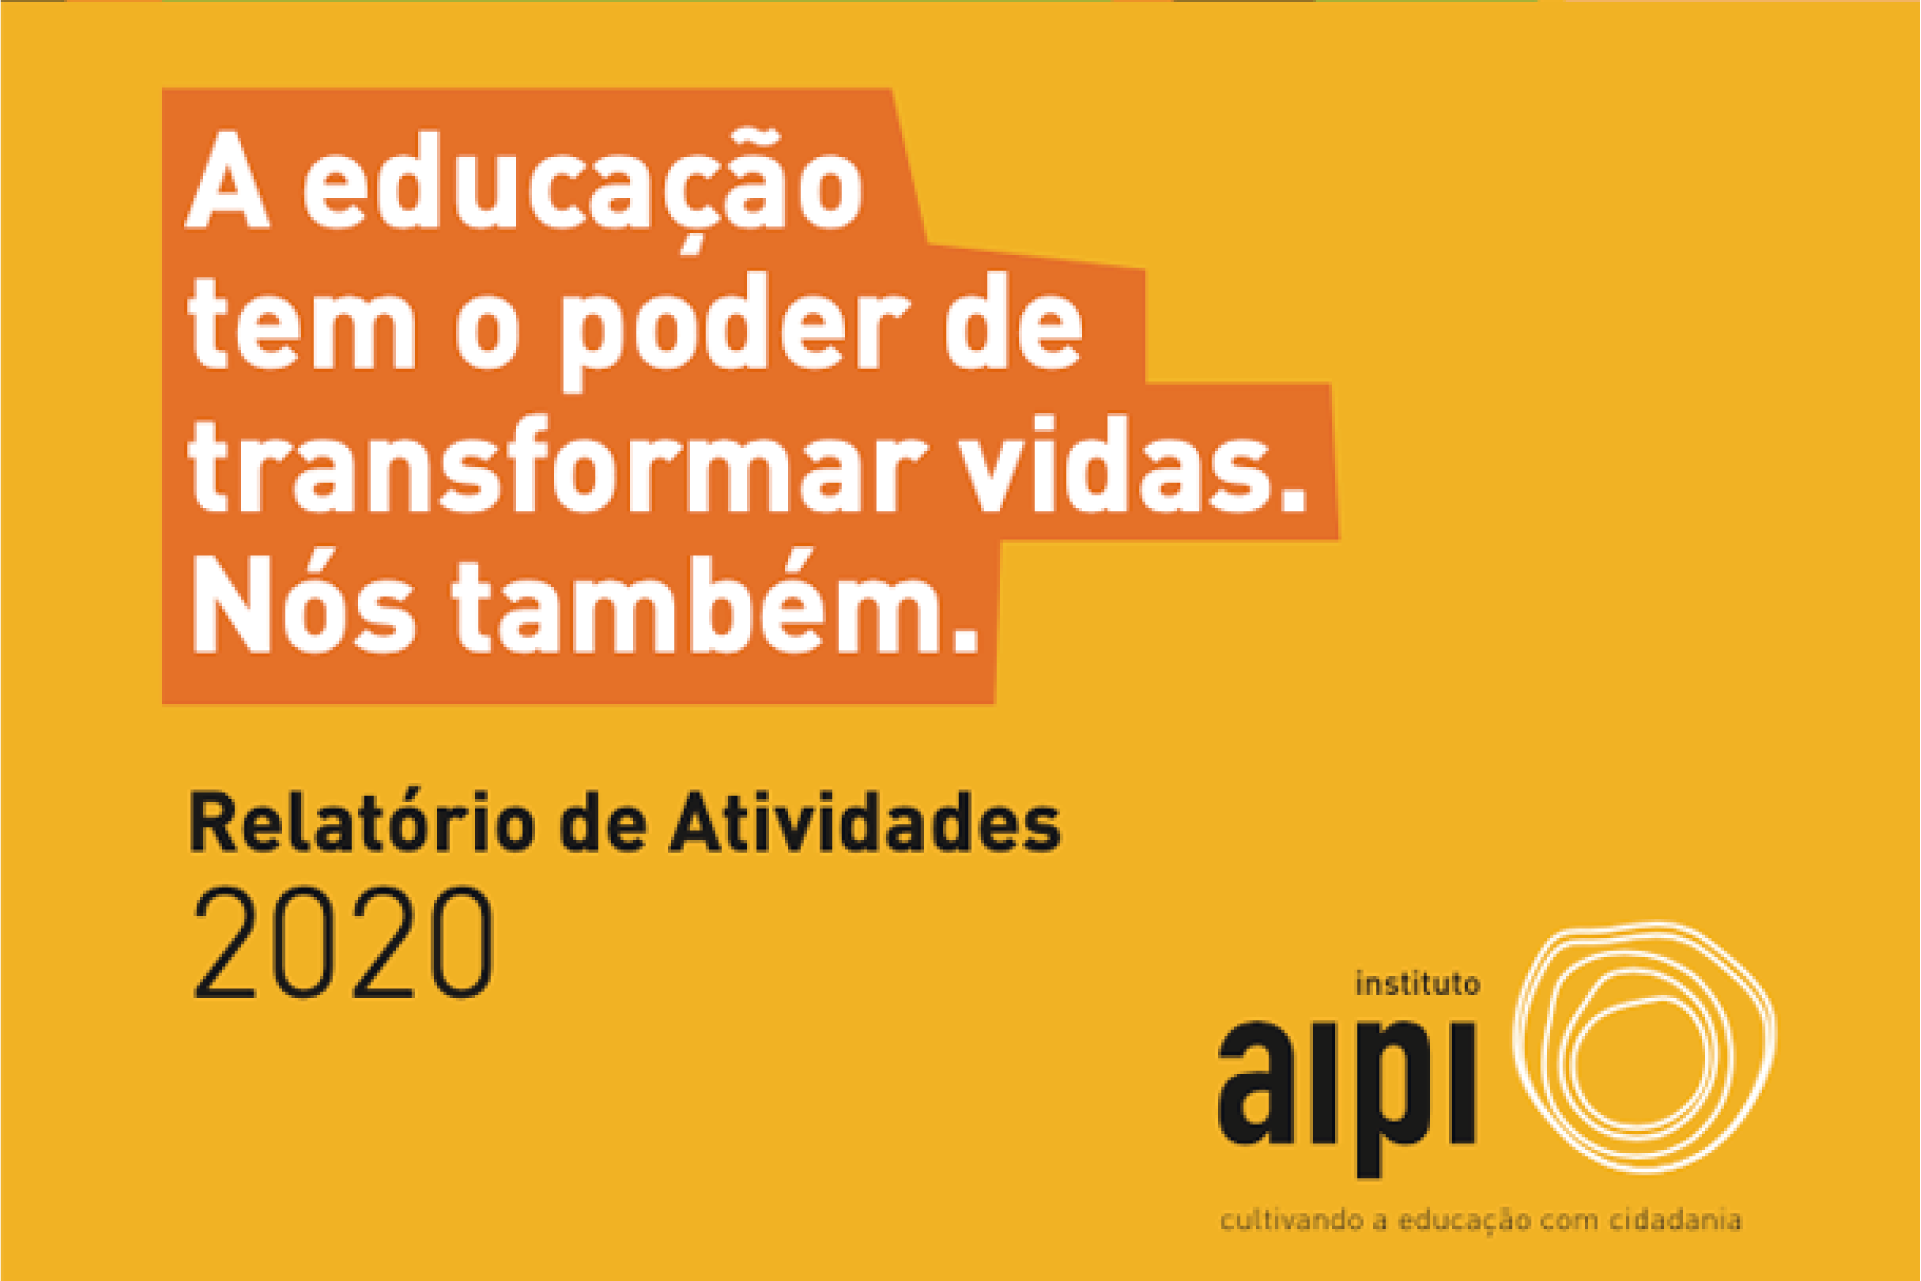 INSTITUO AIPI DISCLOSES THE RESULTS OF ACTIONS DEVELOPED IN 2020